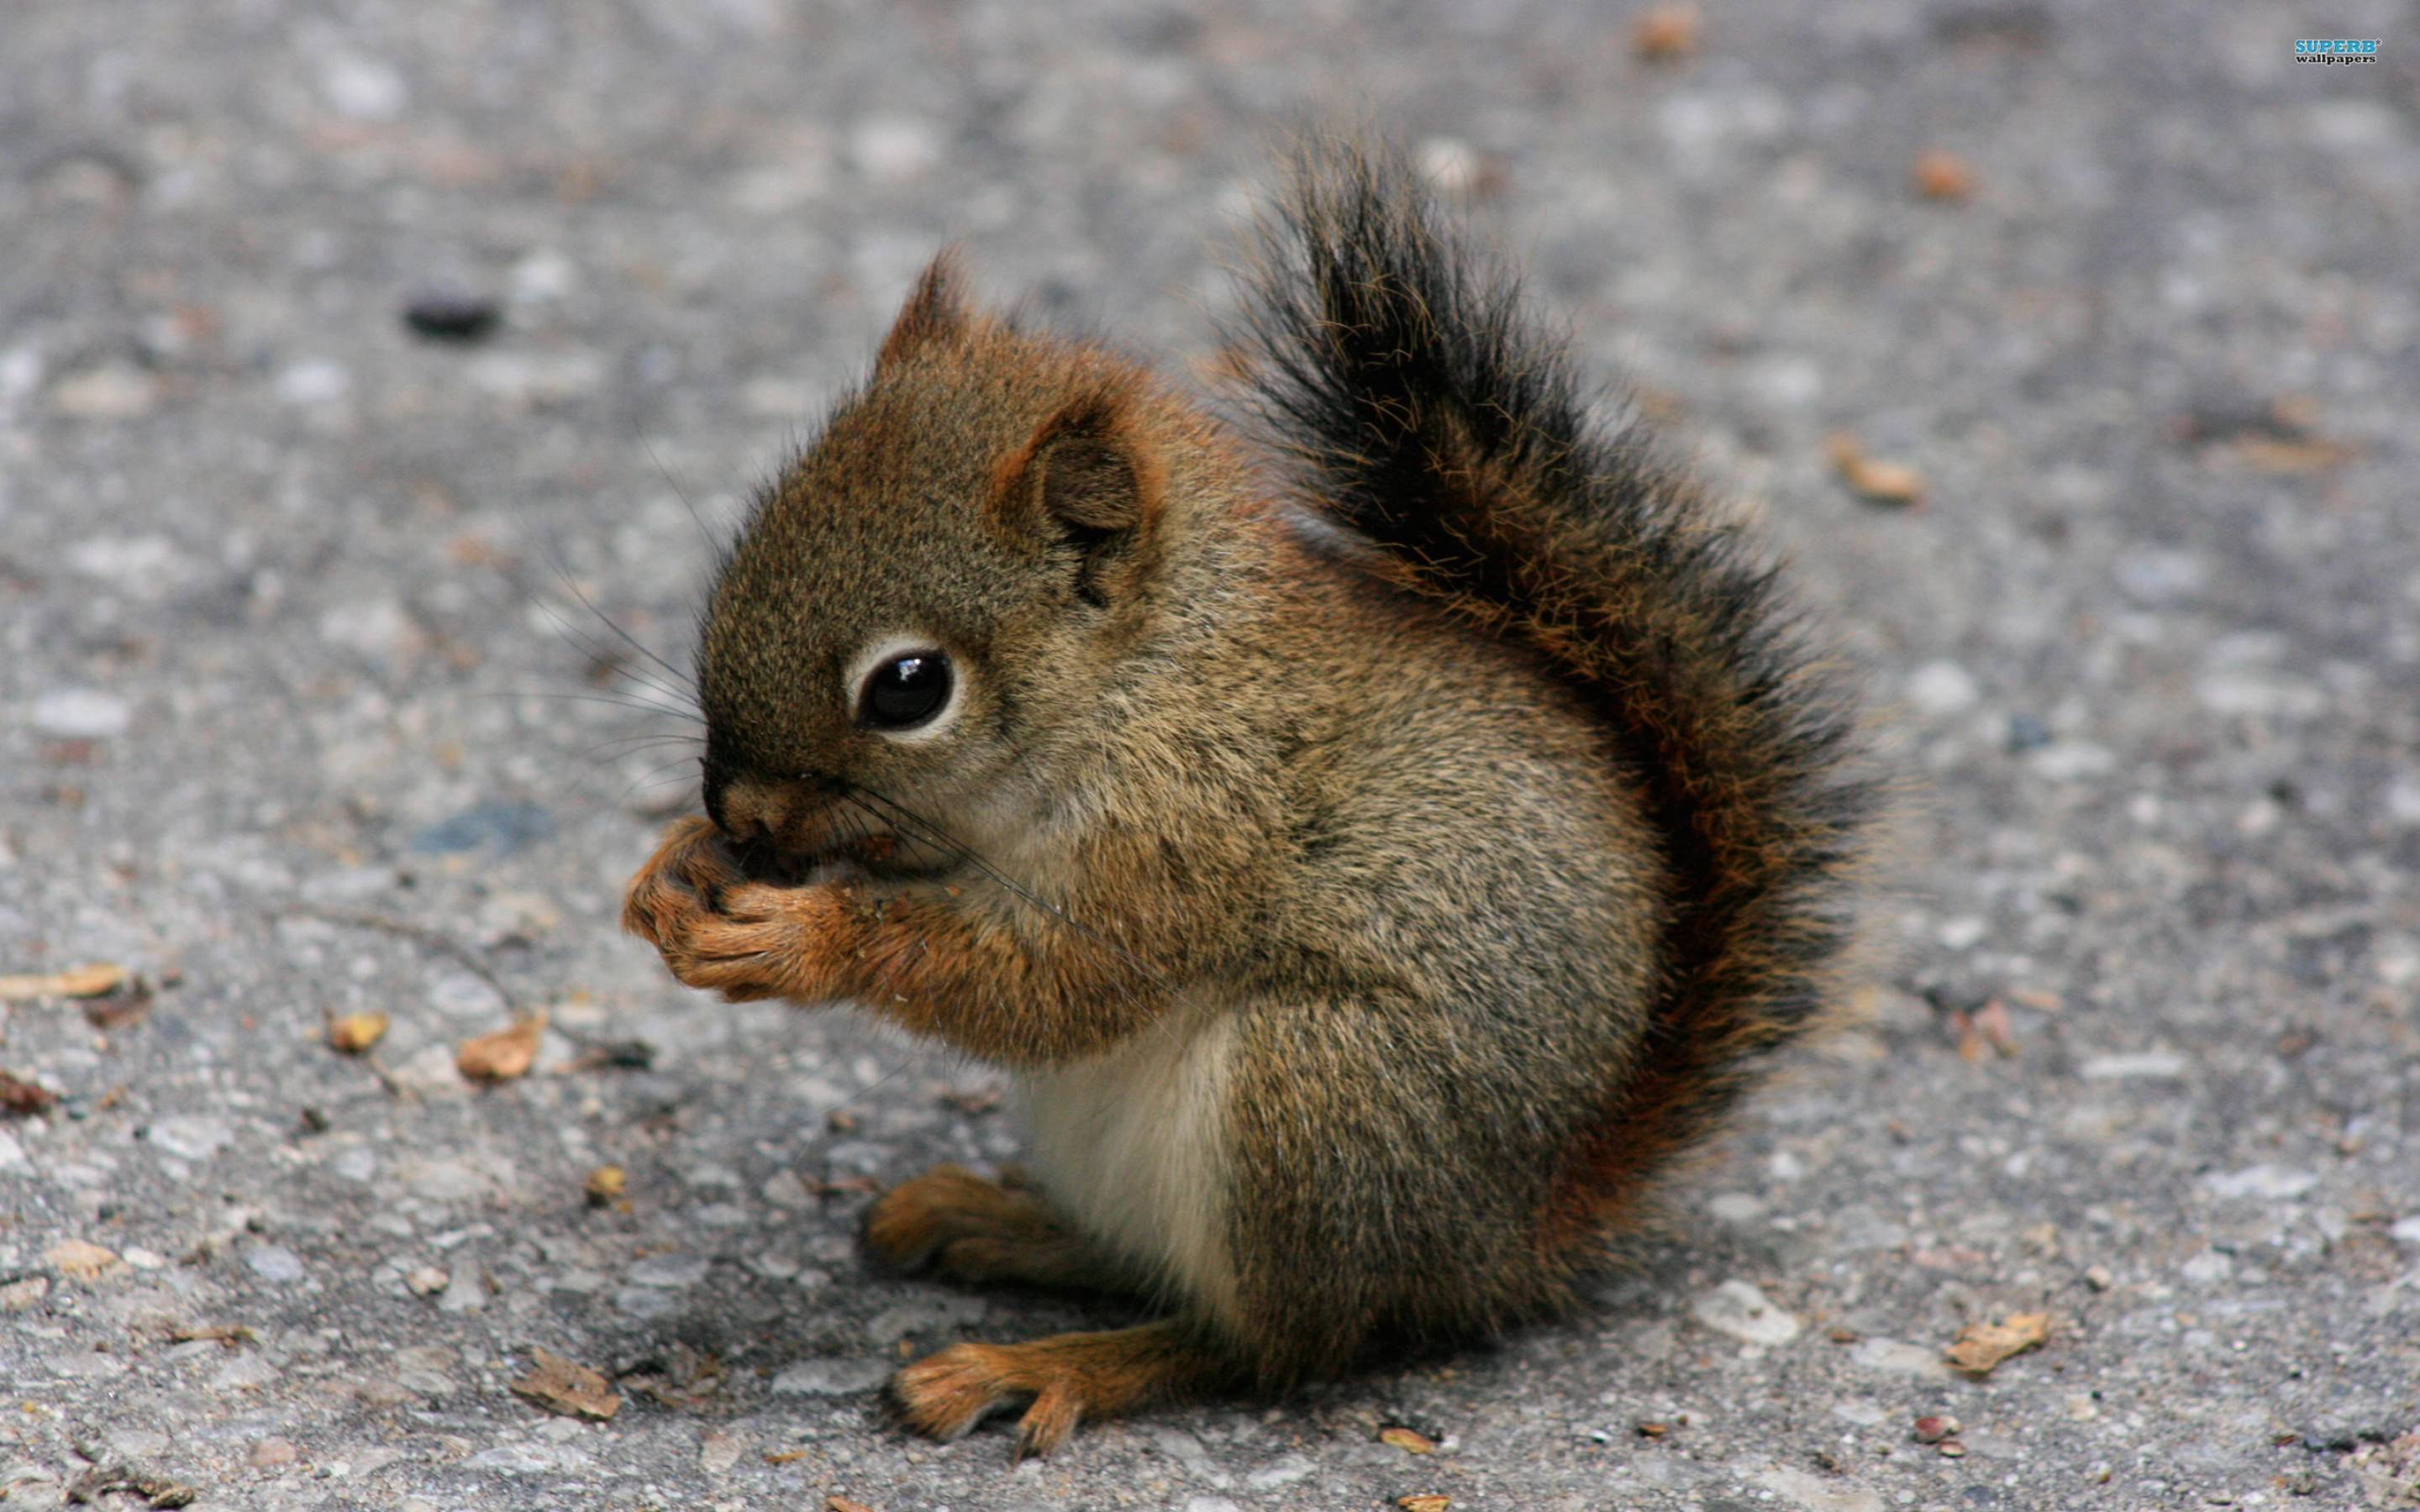 Squirrel Wallpaper 39780 in Animals - Telusers.